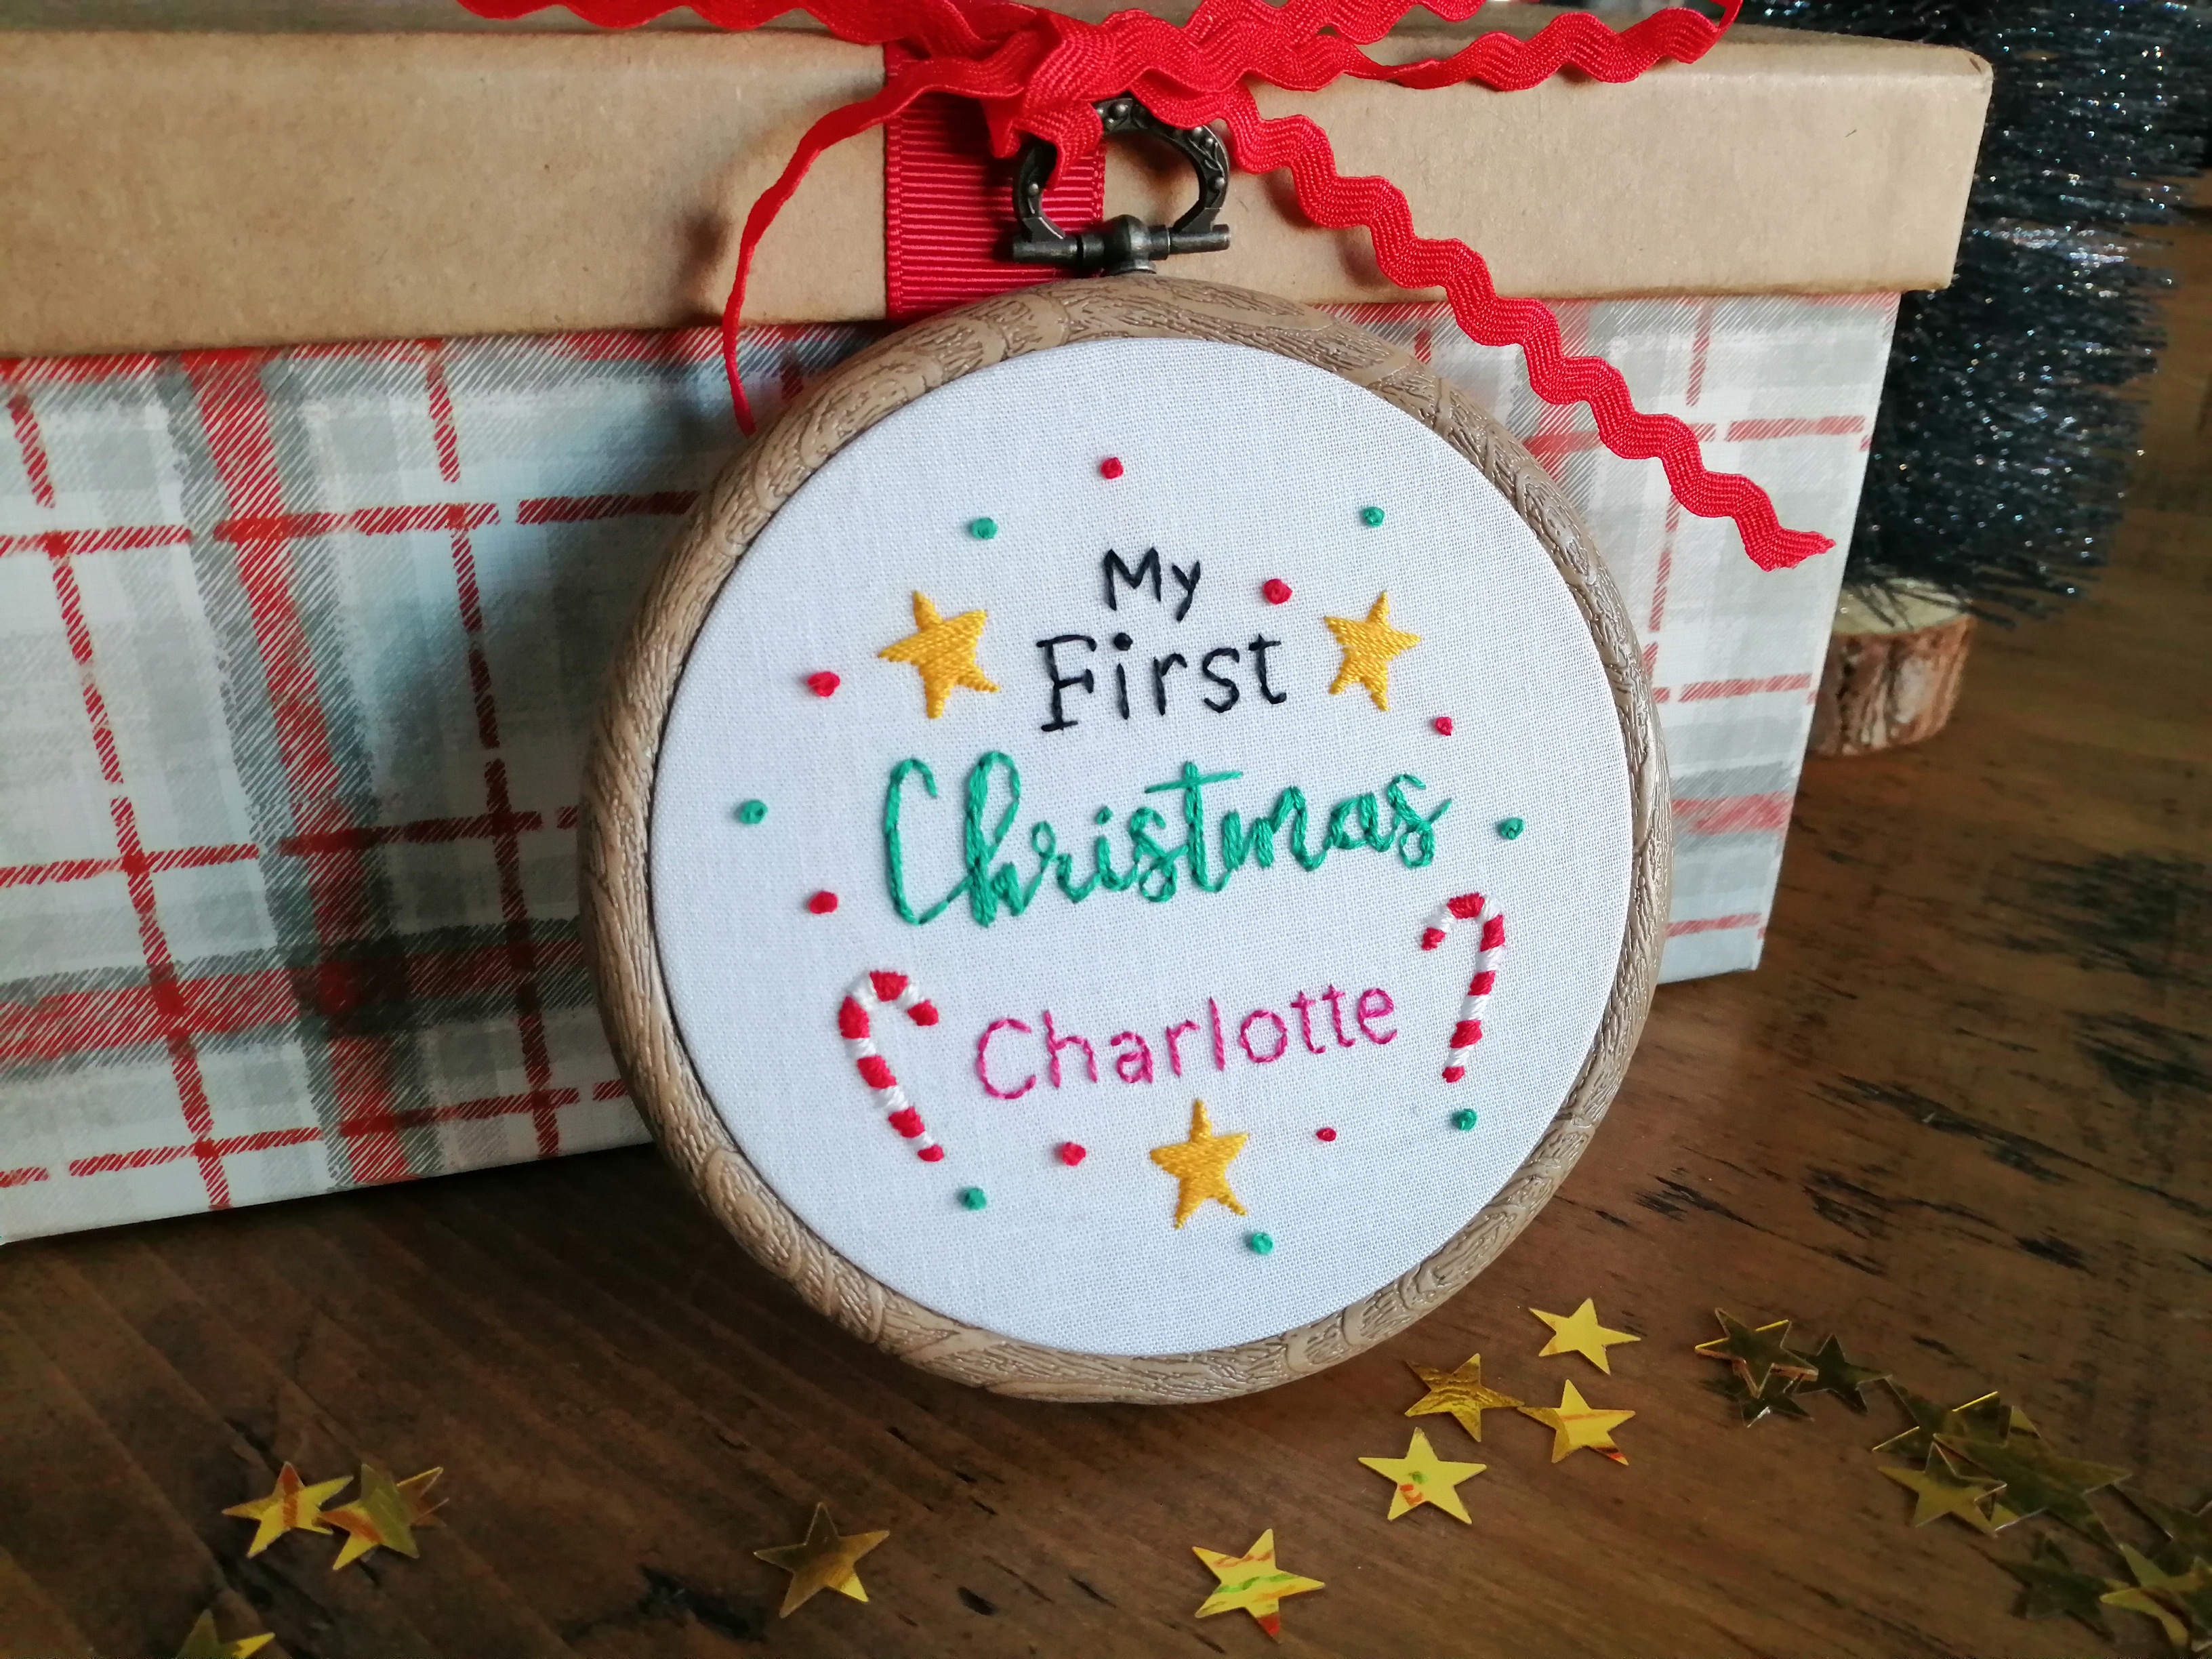 First Christmas - Charlotte 1